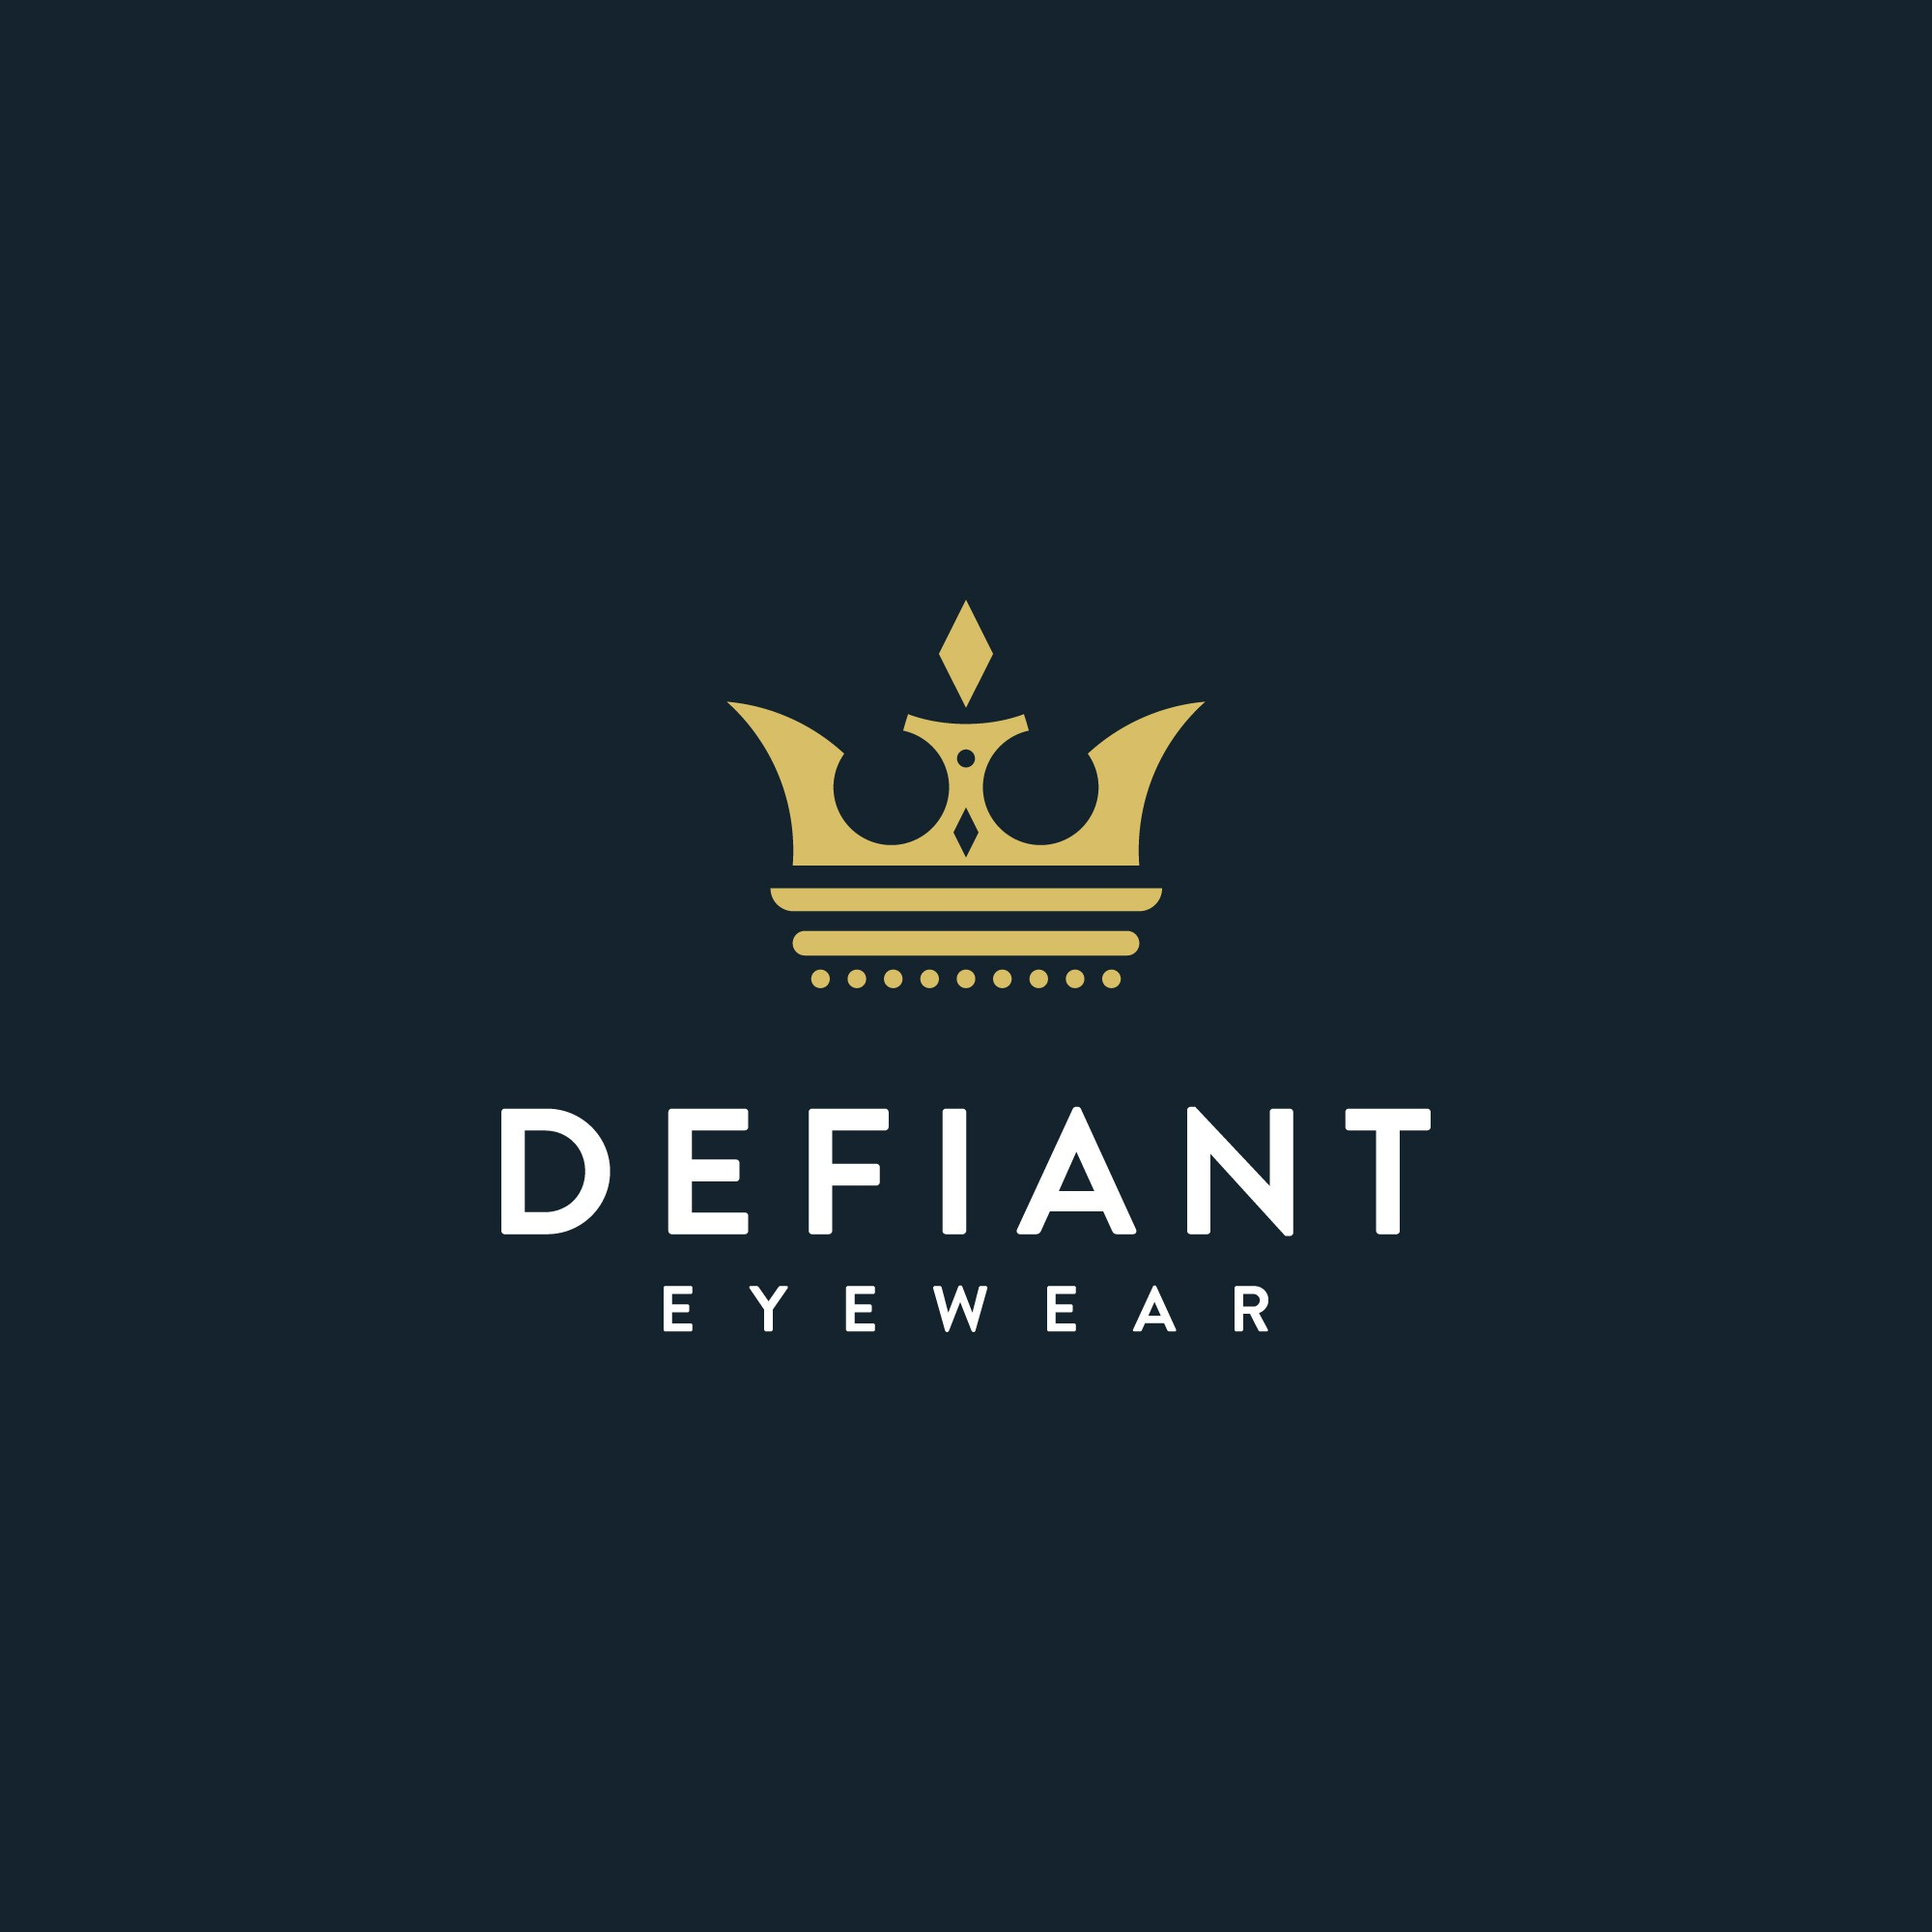 Be Defiant ! Defiant Eyewear is looking for a powerful logo with a bold statement